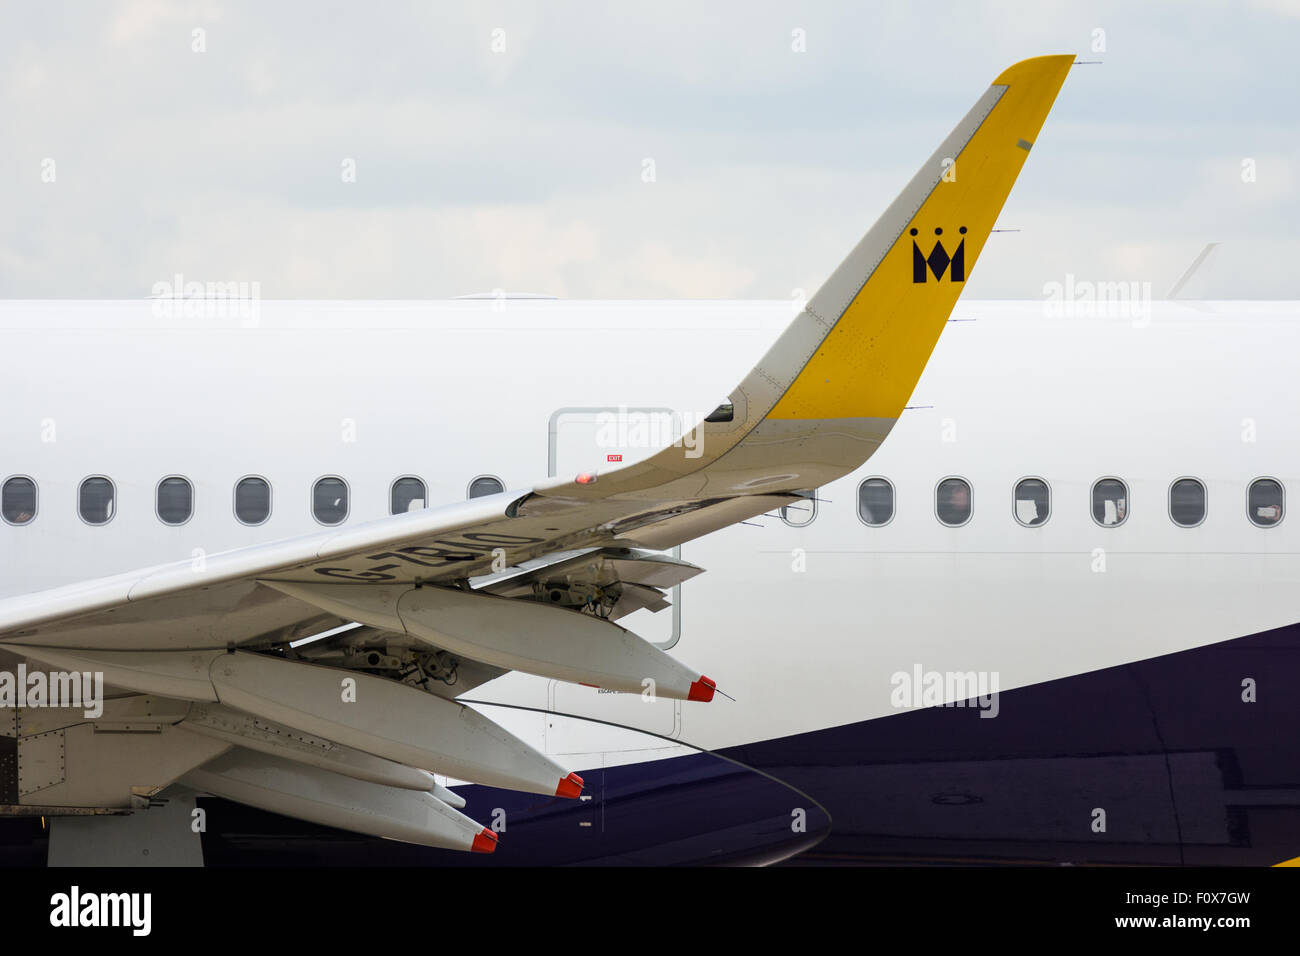 Winglet and wing detail of a Monarch Airlines Airbus A321-200 plane - Stock Image